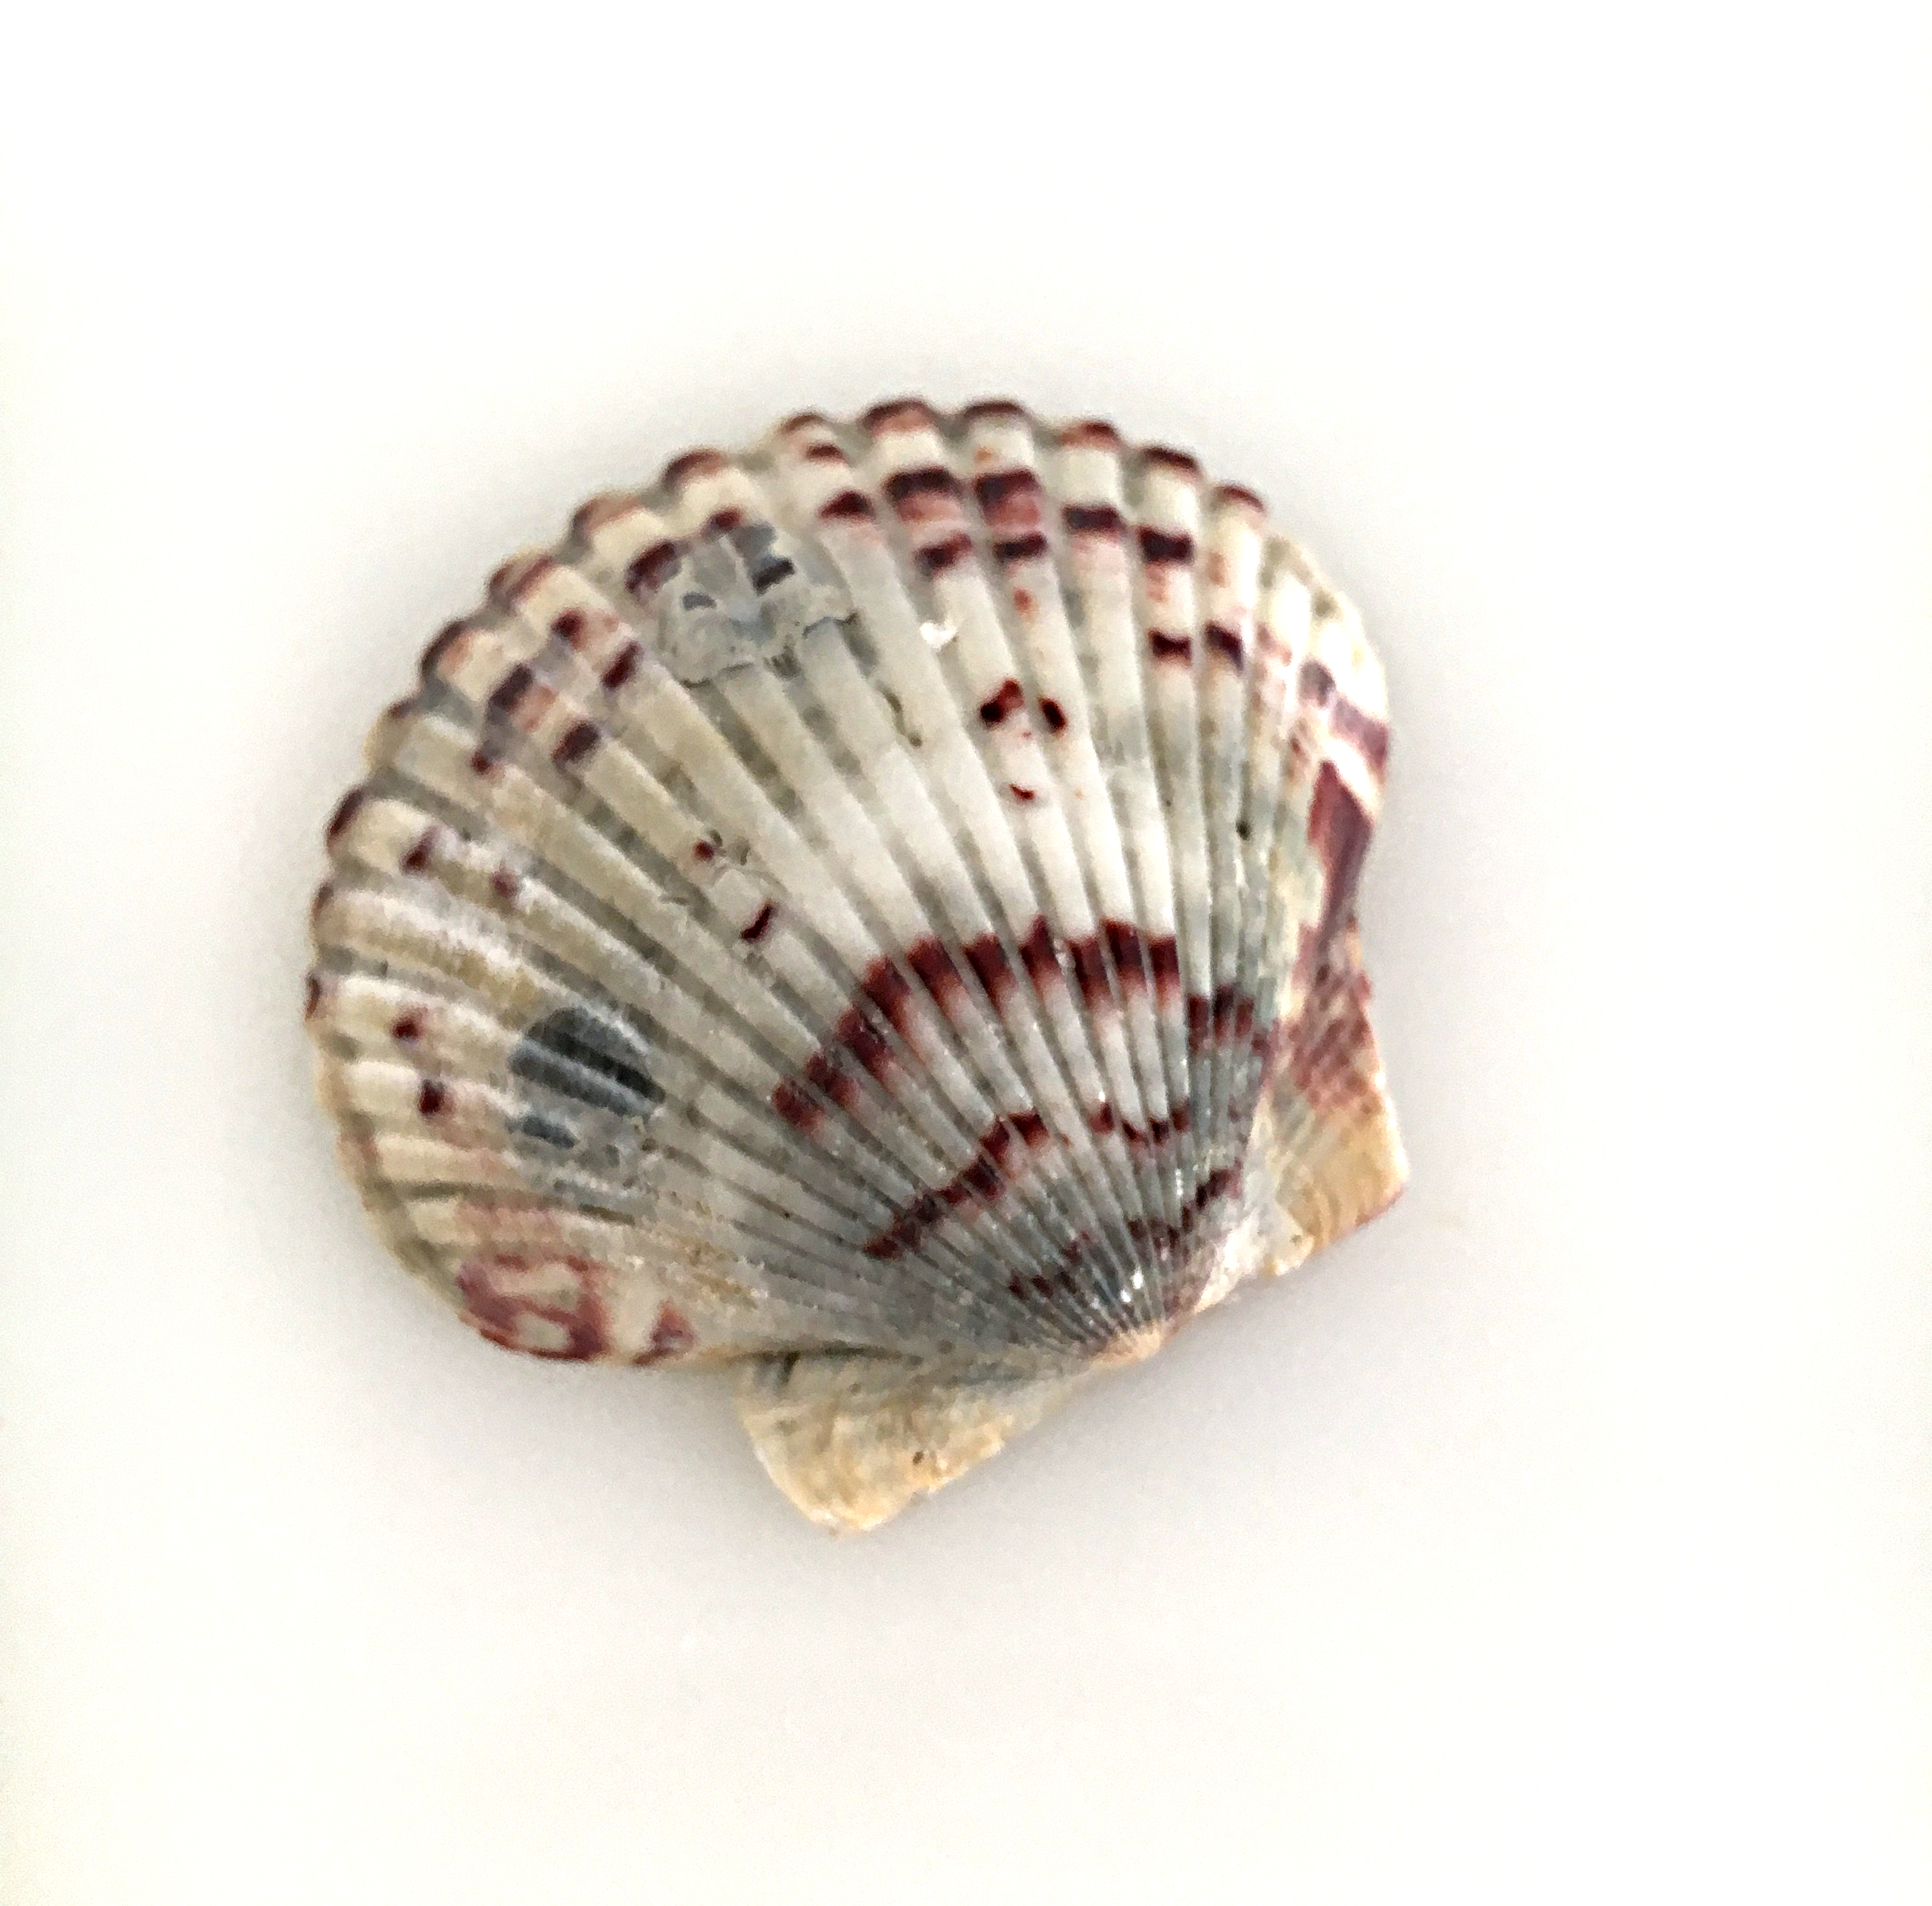 Pretty scallop shell with maroon stripes